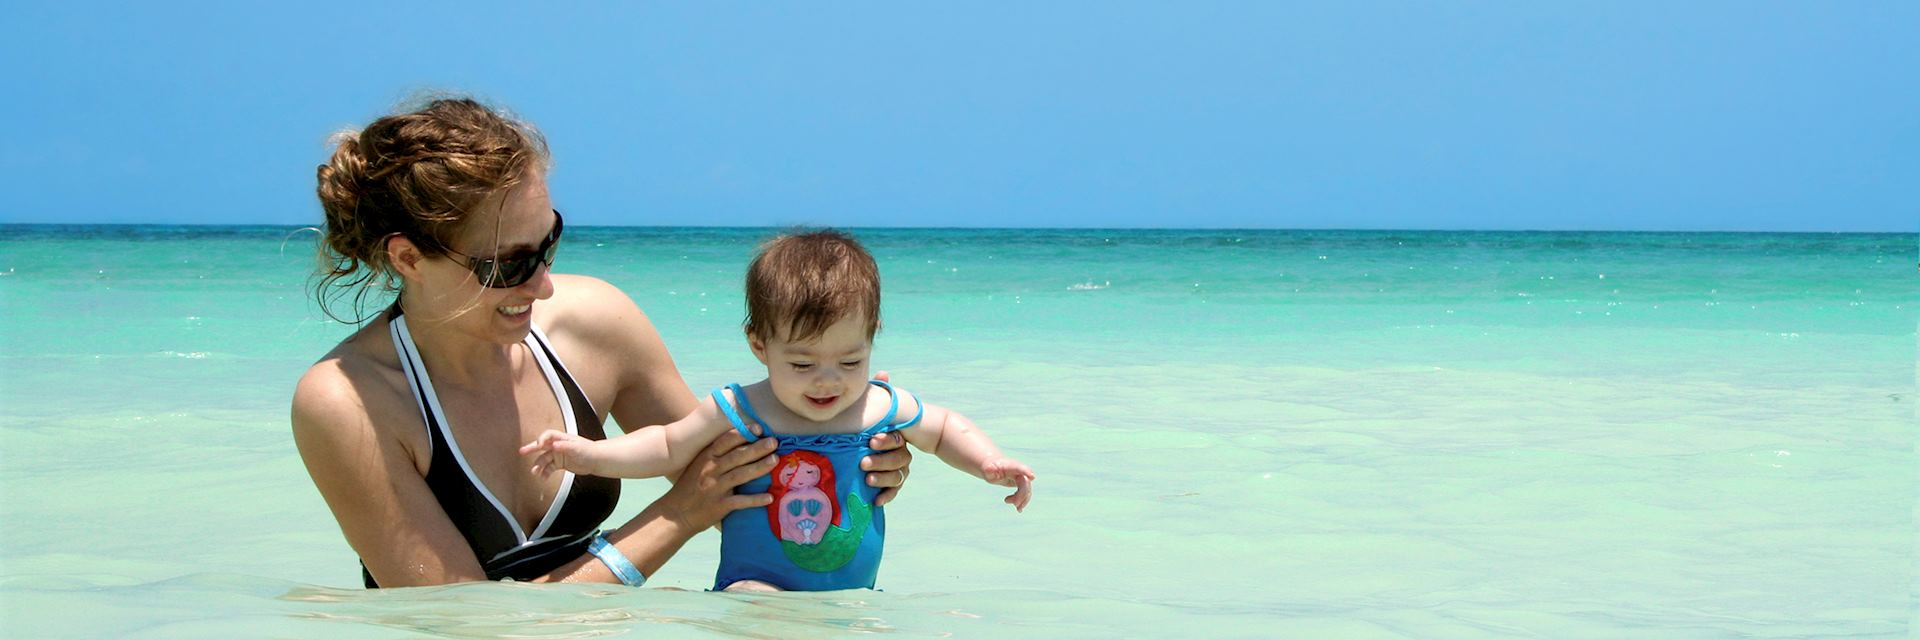 A family enjoying time in the waters off Belize